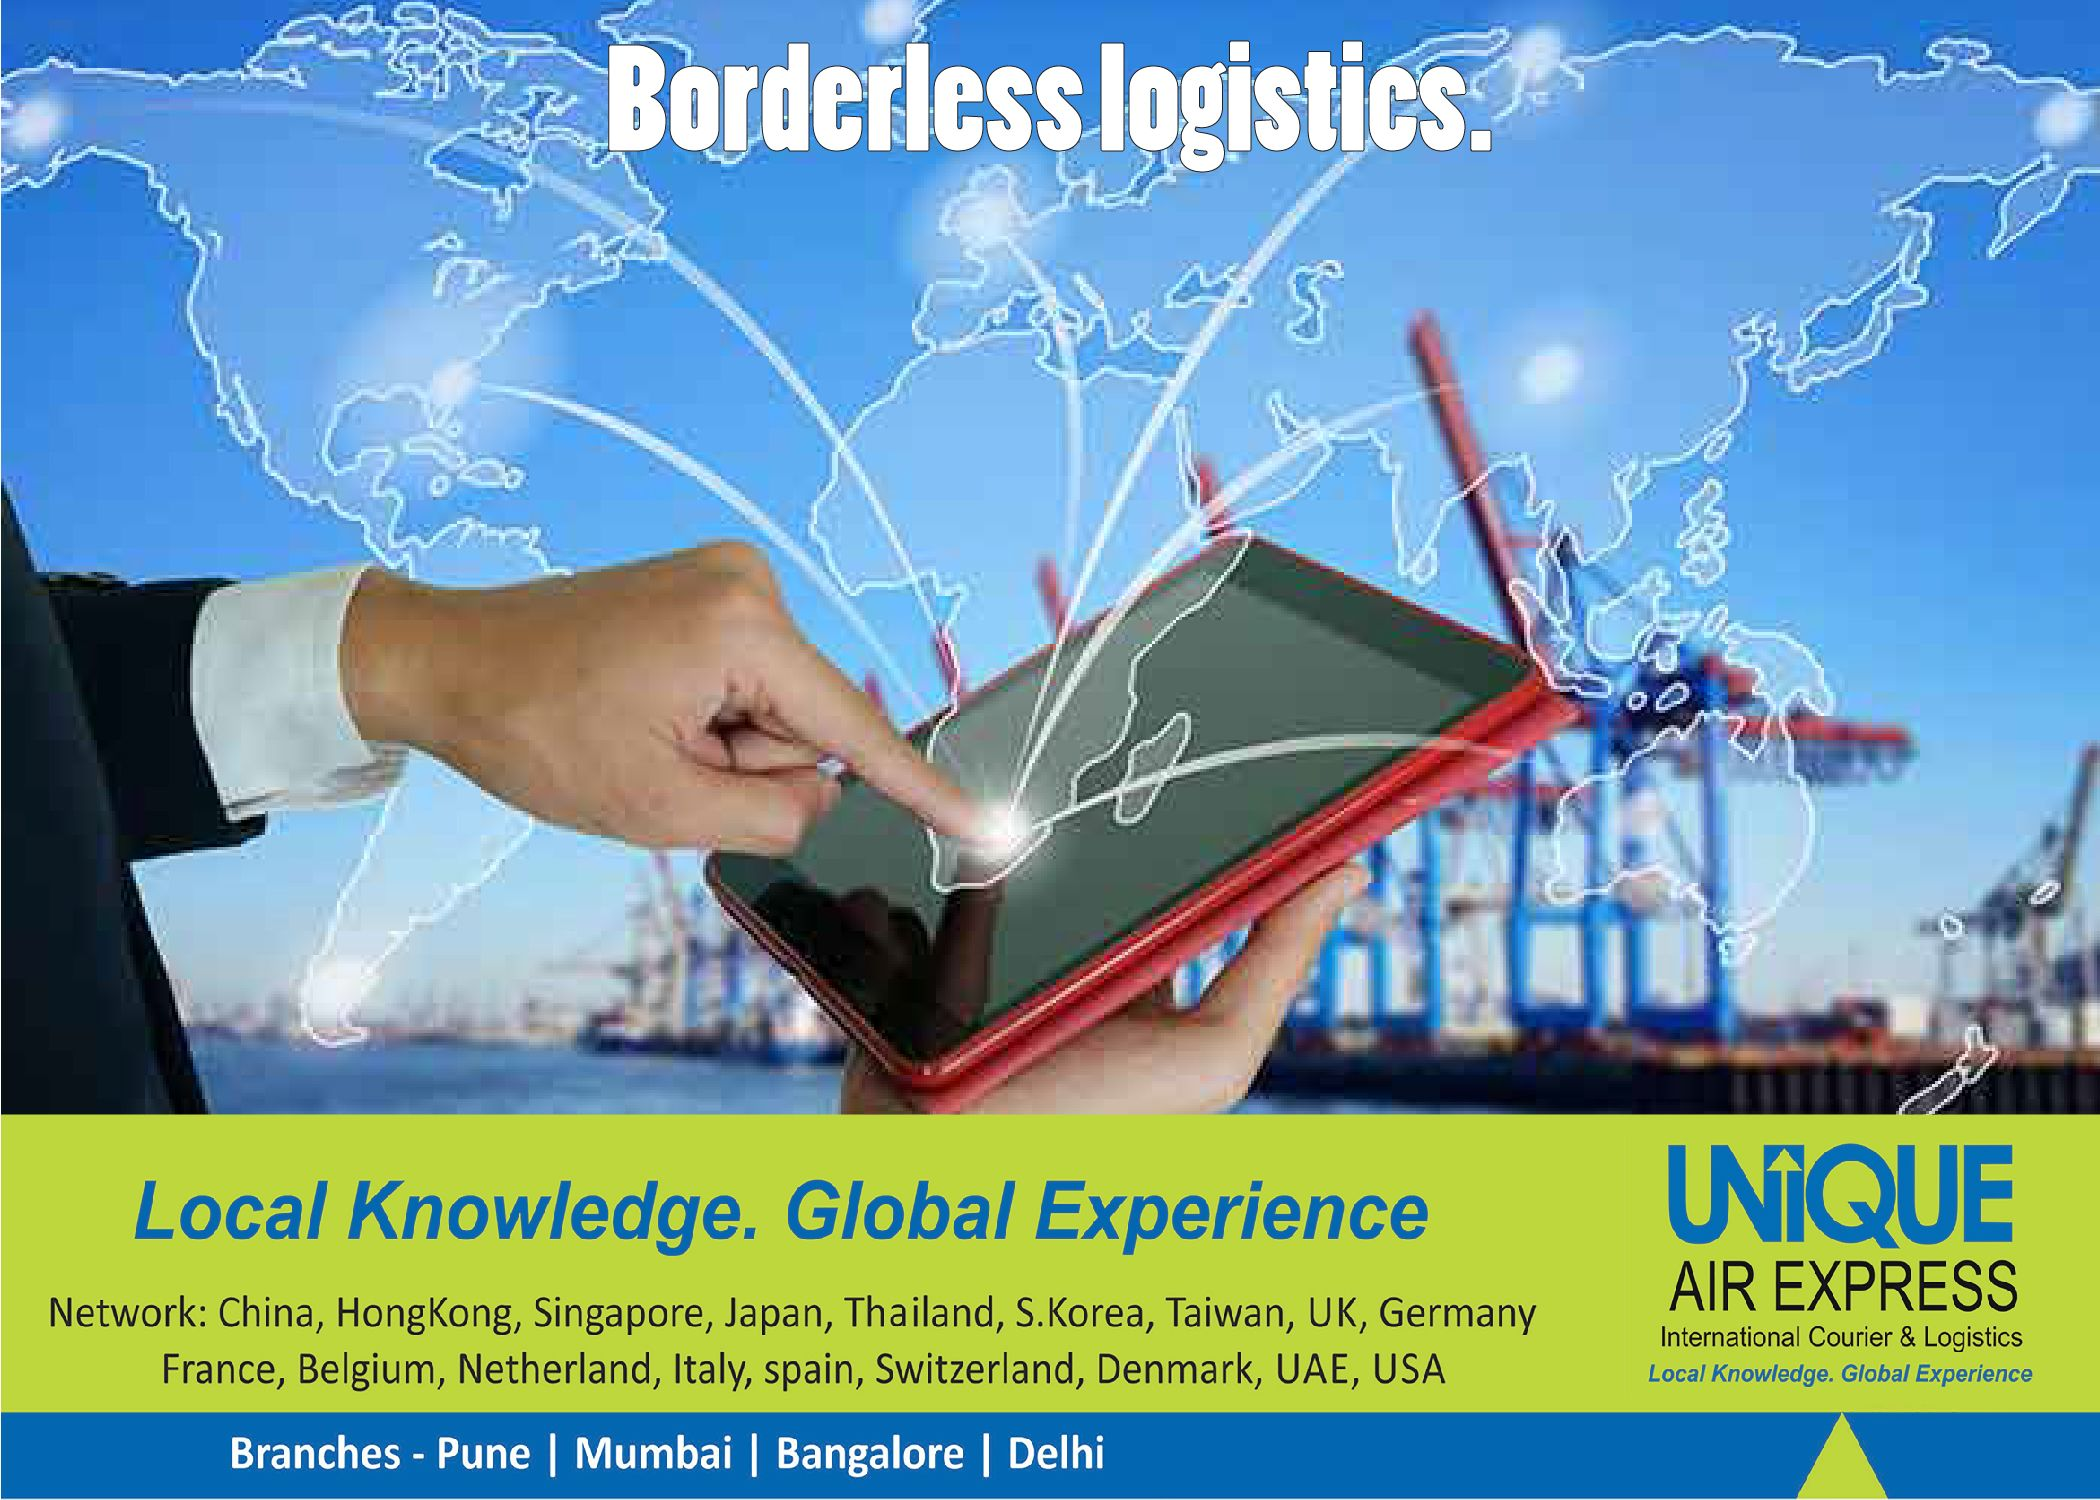 Track Your Consignment on One Click! Borderless Logistics